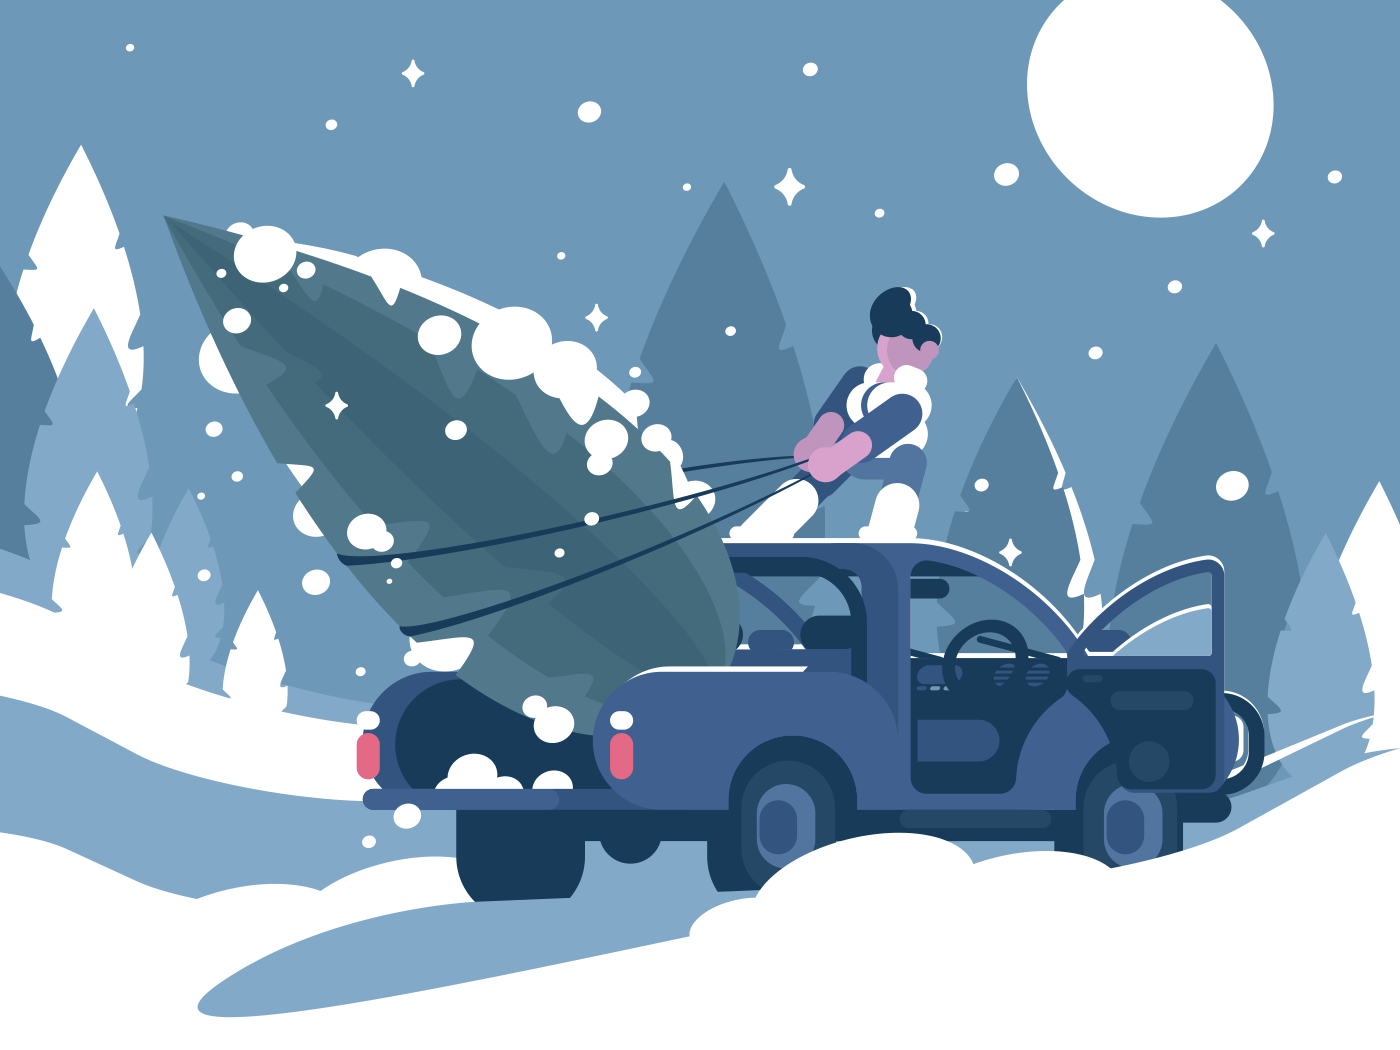 Man loading Christmas tree in car for holiday. Vector illustration